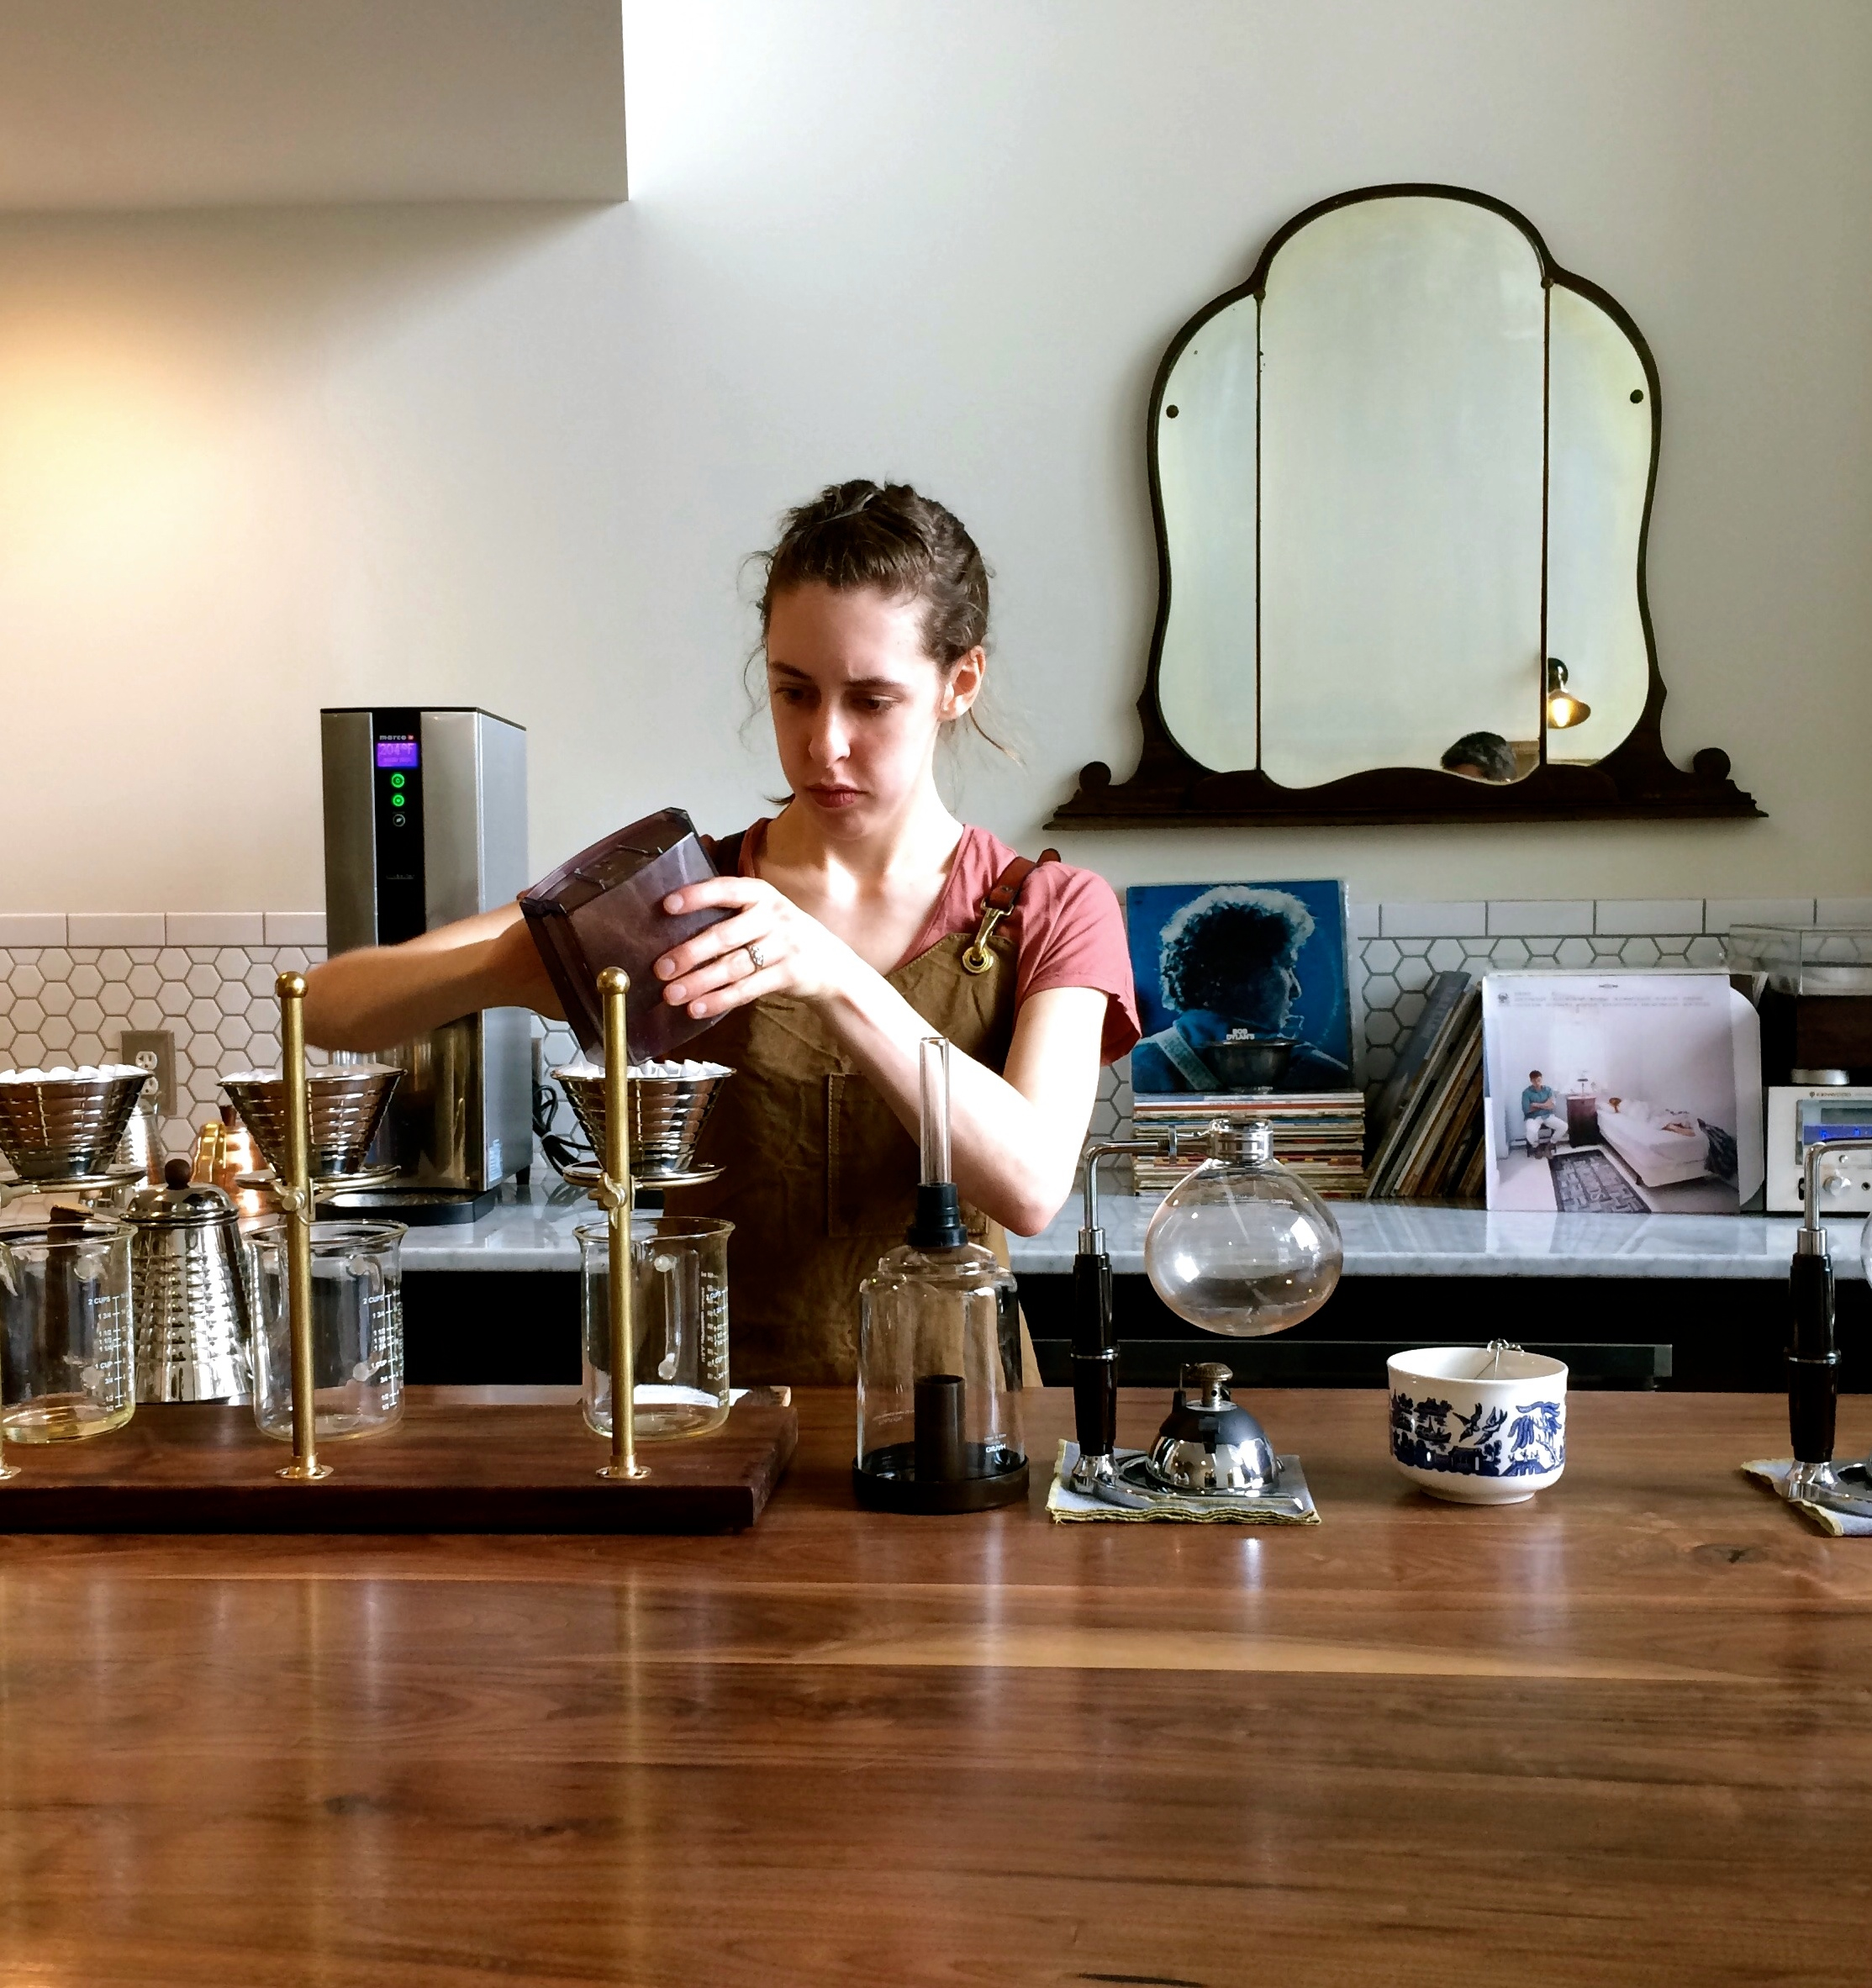 The pourover station at work. | Photo by Imbibe